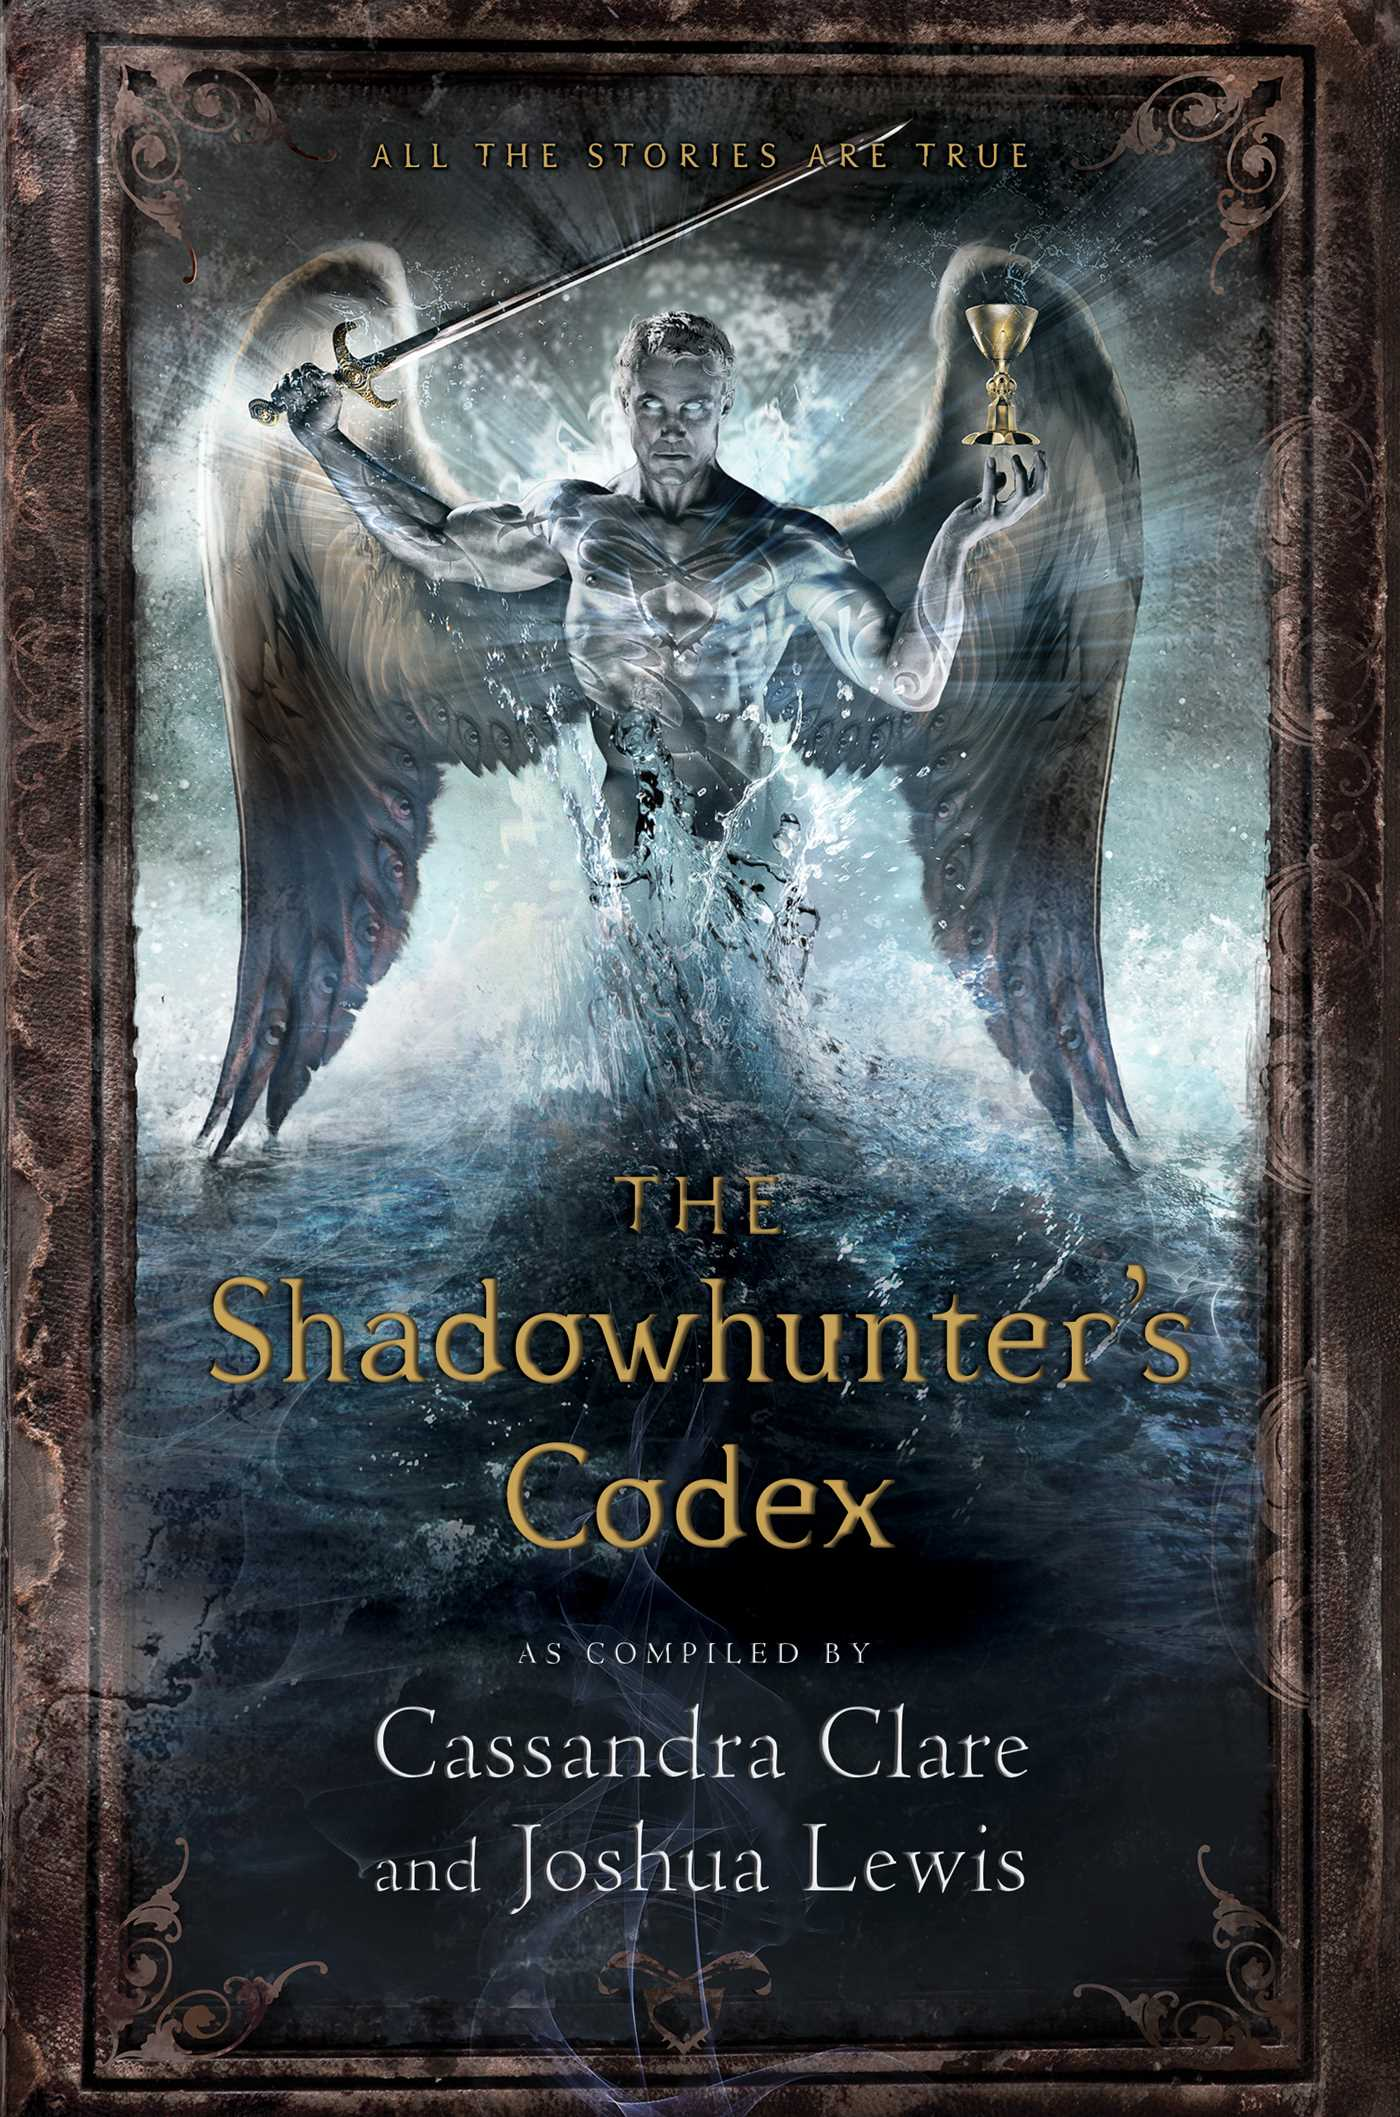 Shadowhunters Libros The Shadowhunter 39s Codex Book By Cassandra Clare Joshua